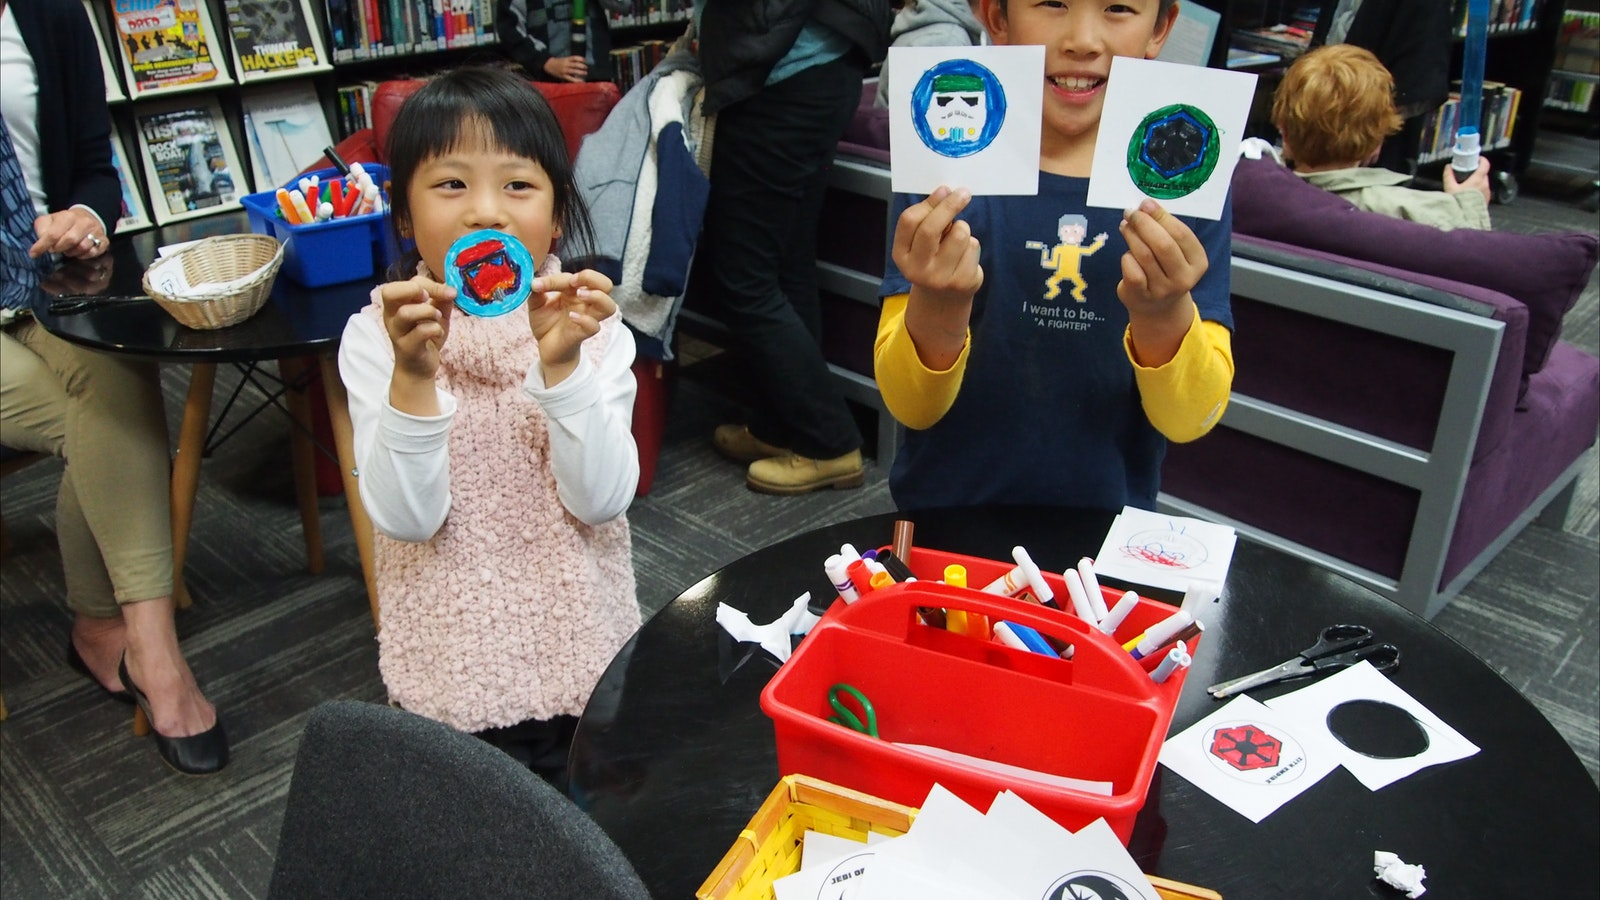 Childrens activity at Wodonga Library